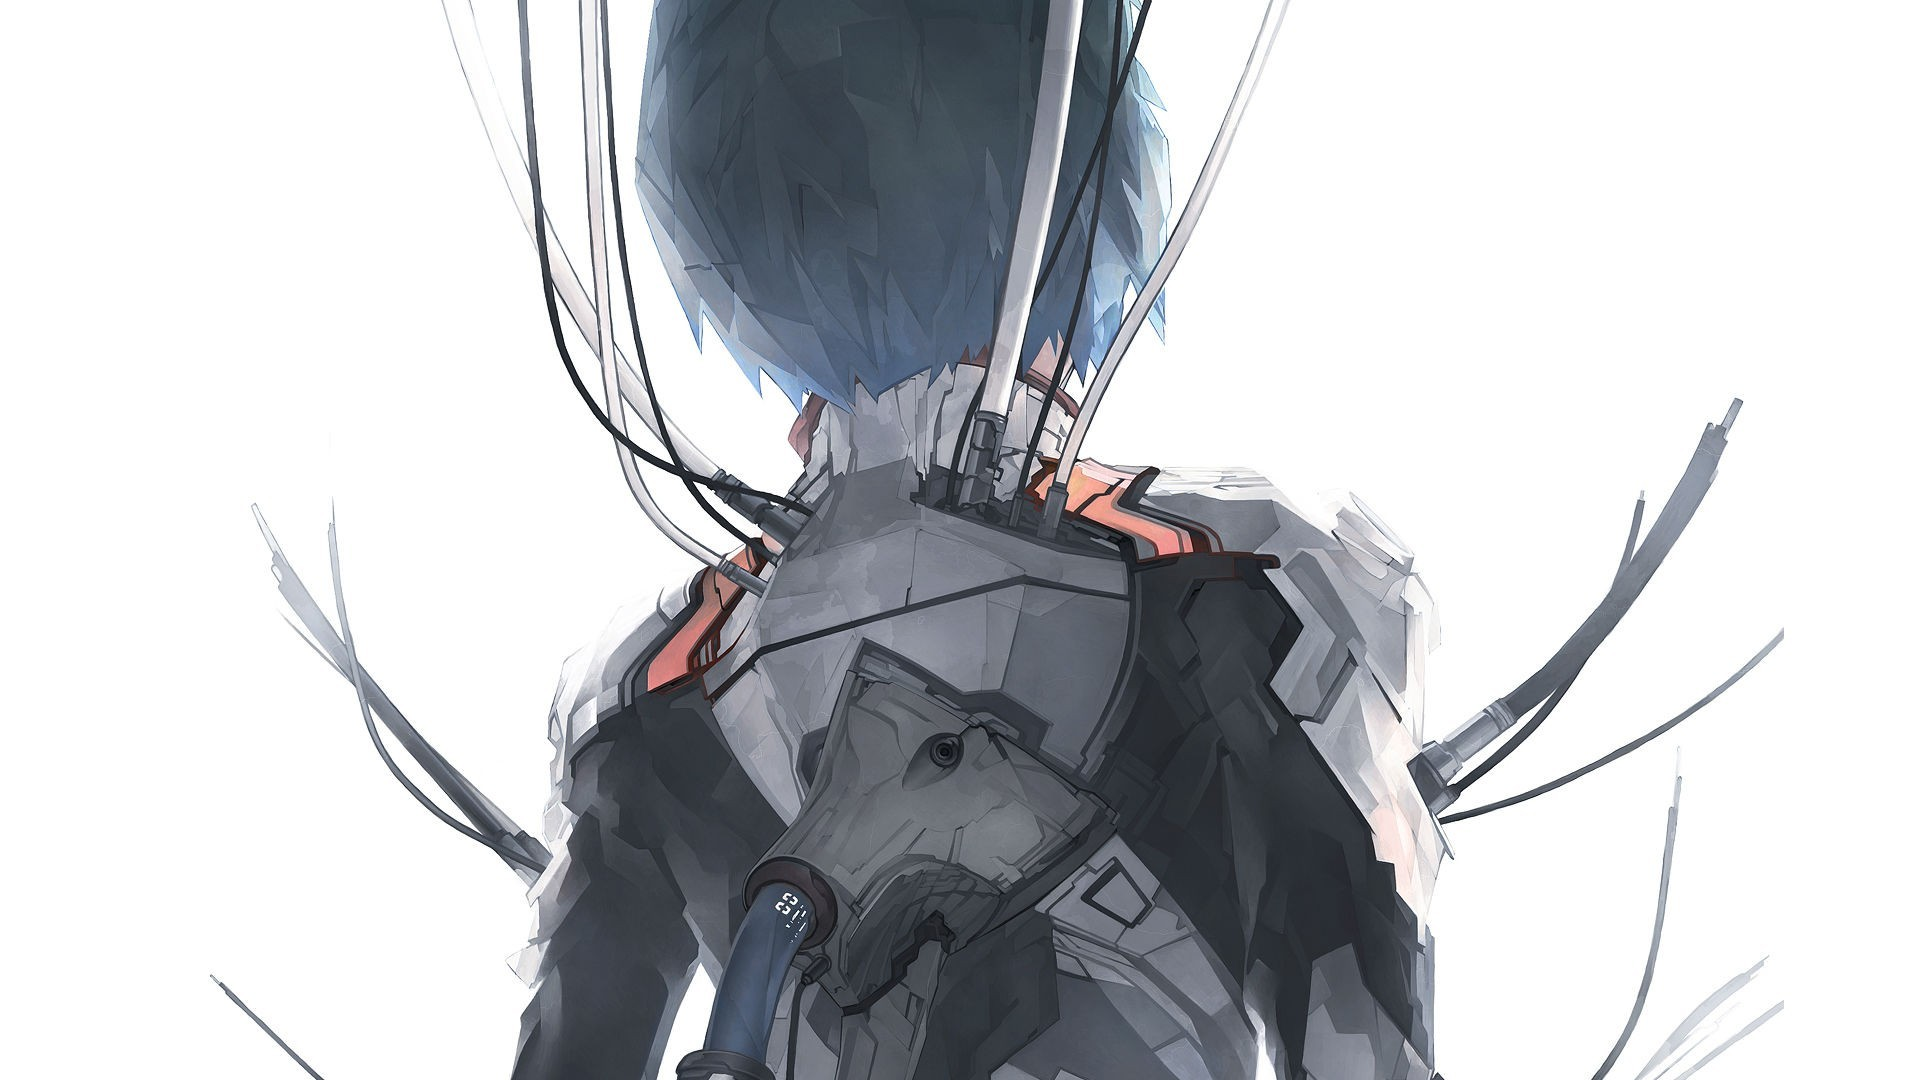 1920x1080 Neon Genesis Evangelion, Ayanami Rei, Wires, Solo, Simple Background  wallpaper thumb